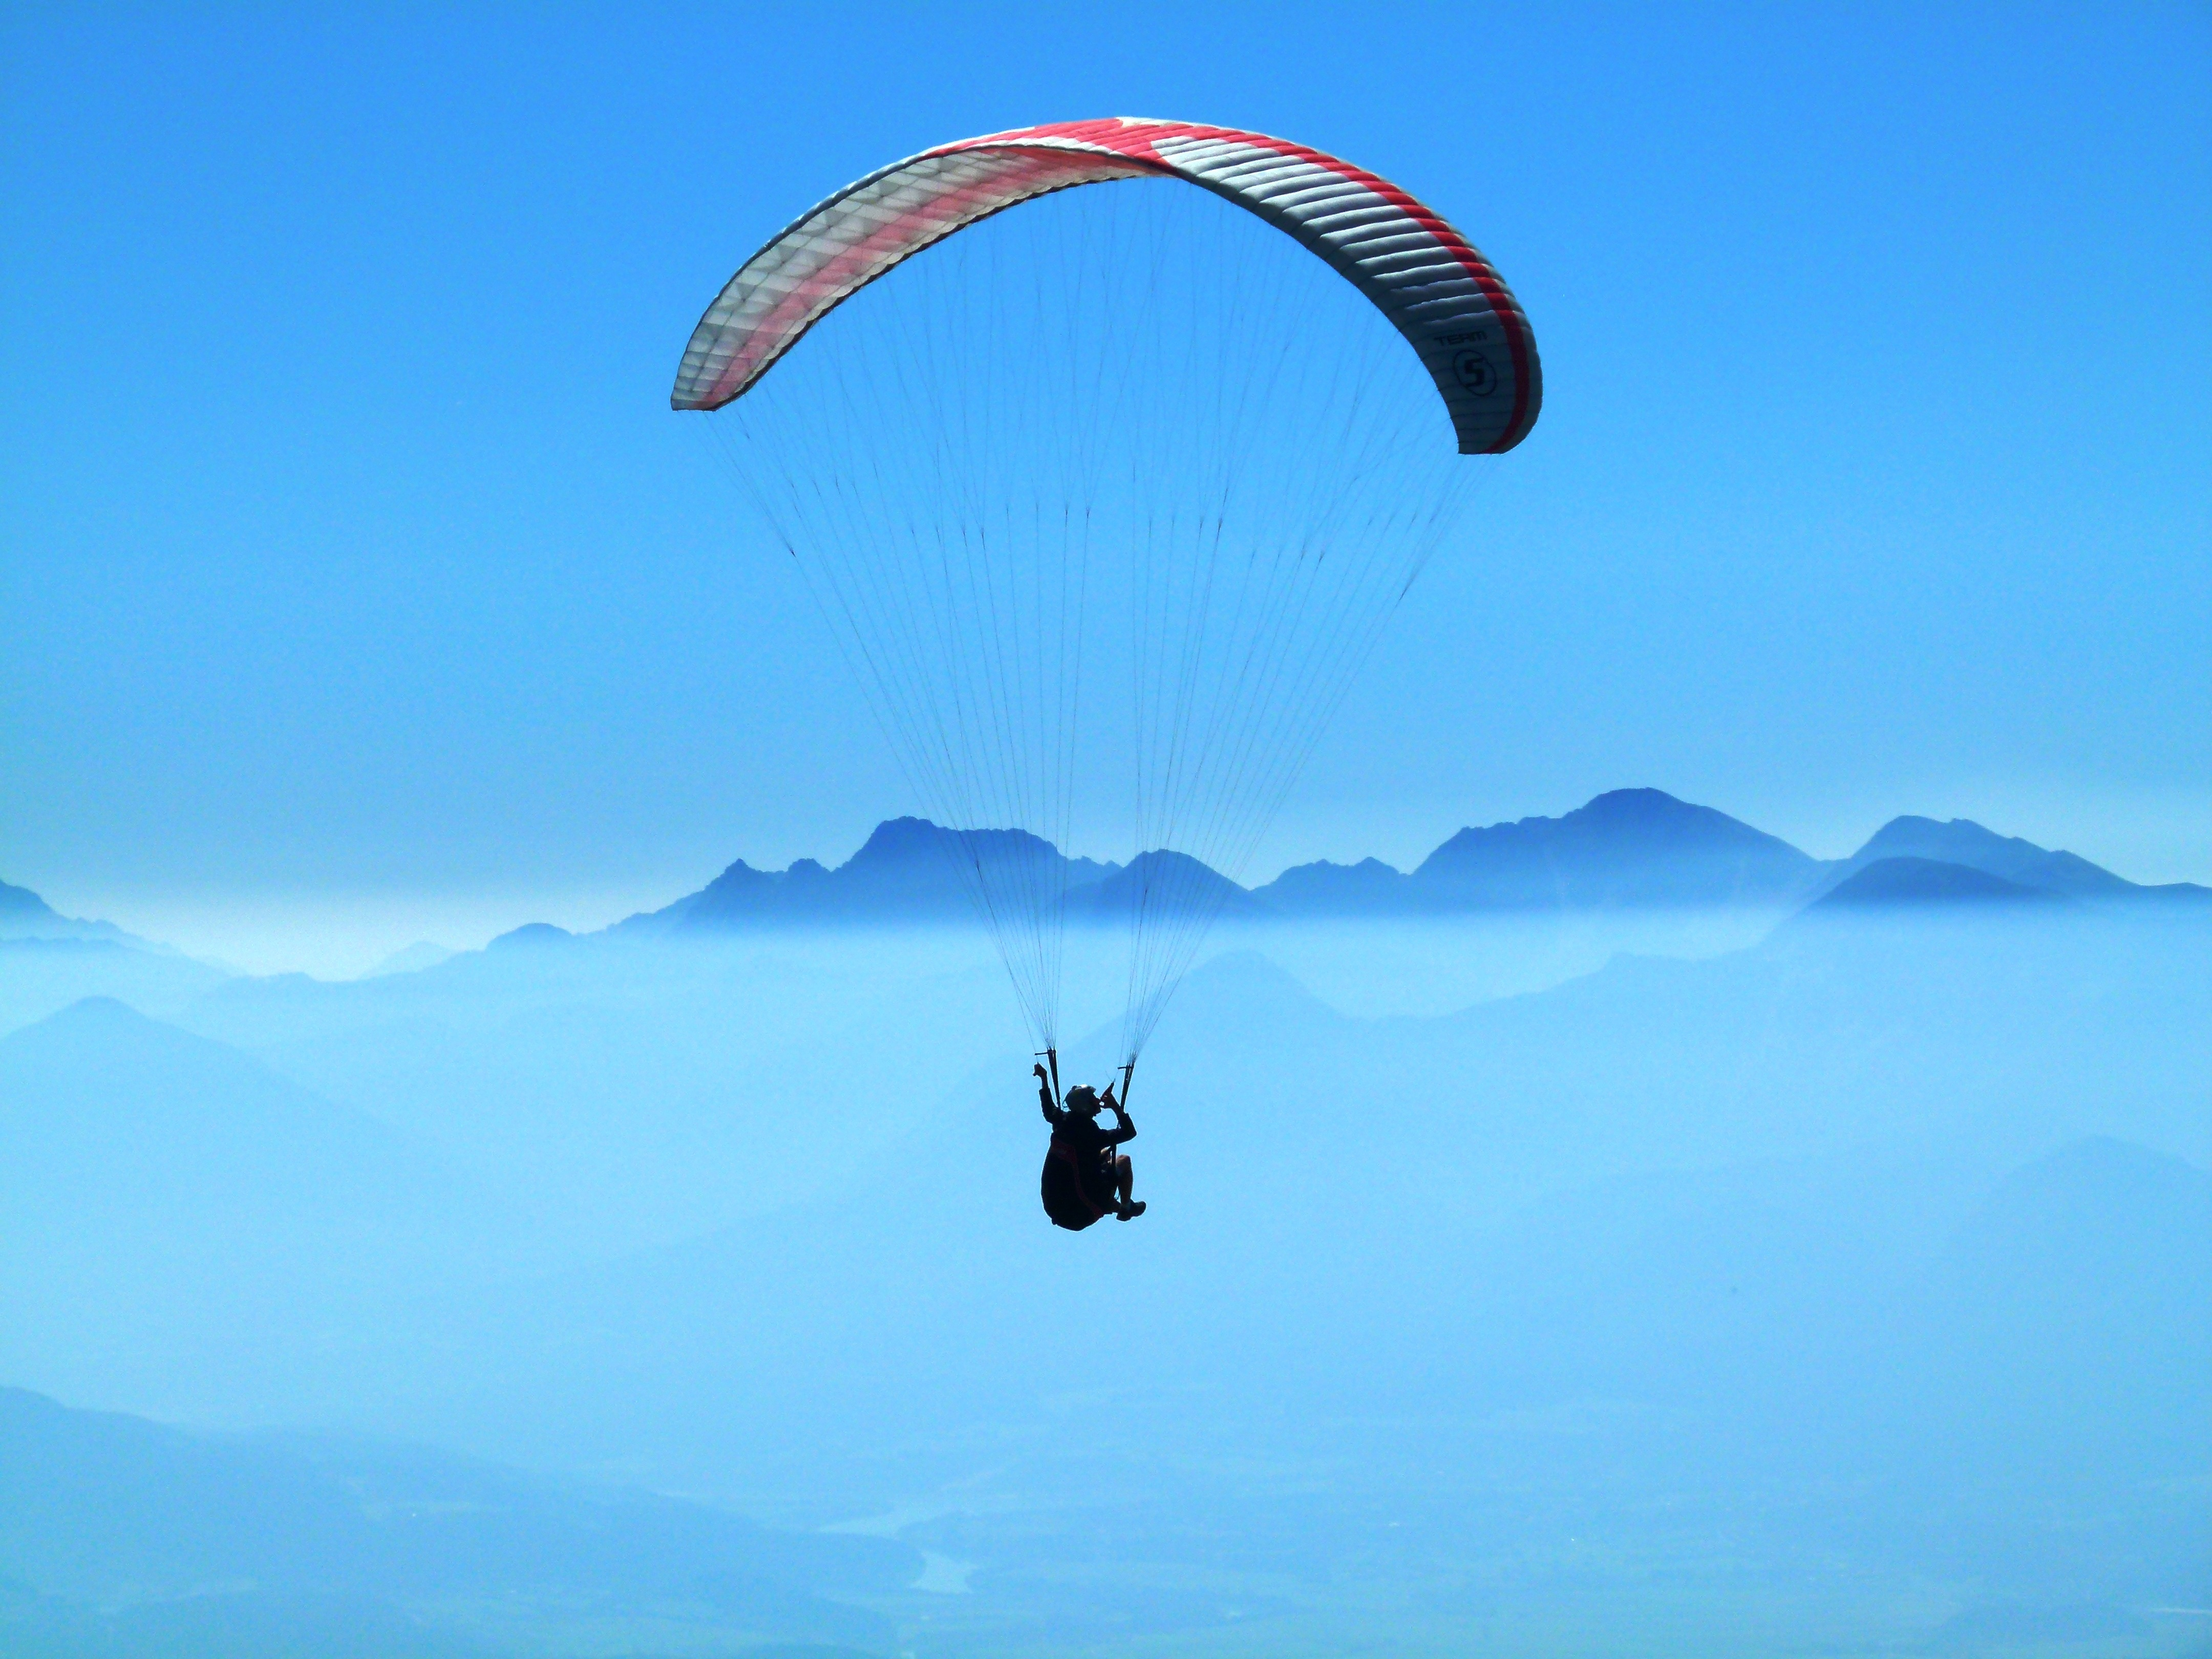 Person Using Red Parachute On Mid Air Free Stock Photo